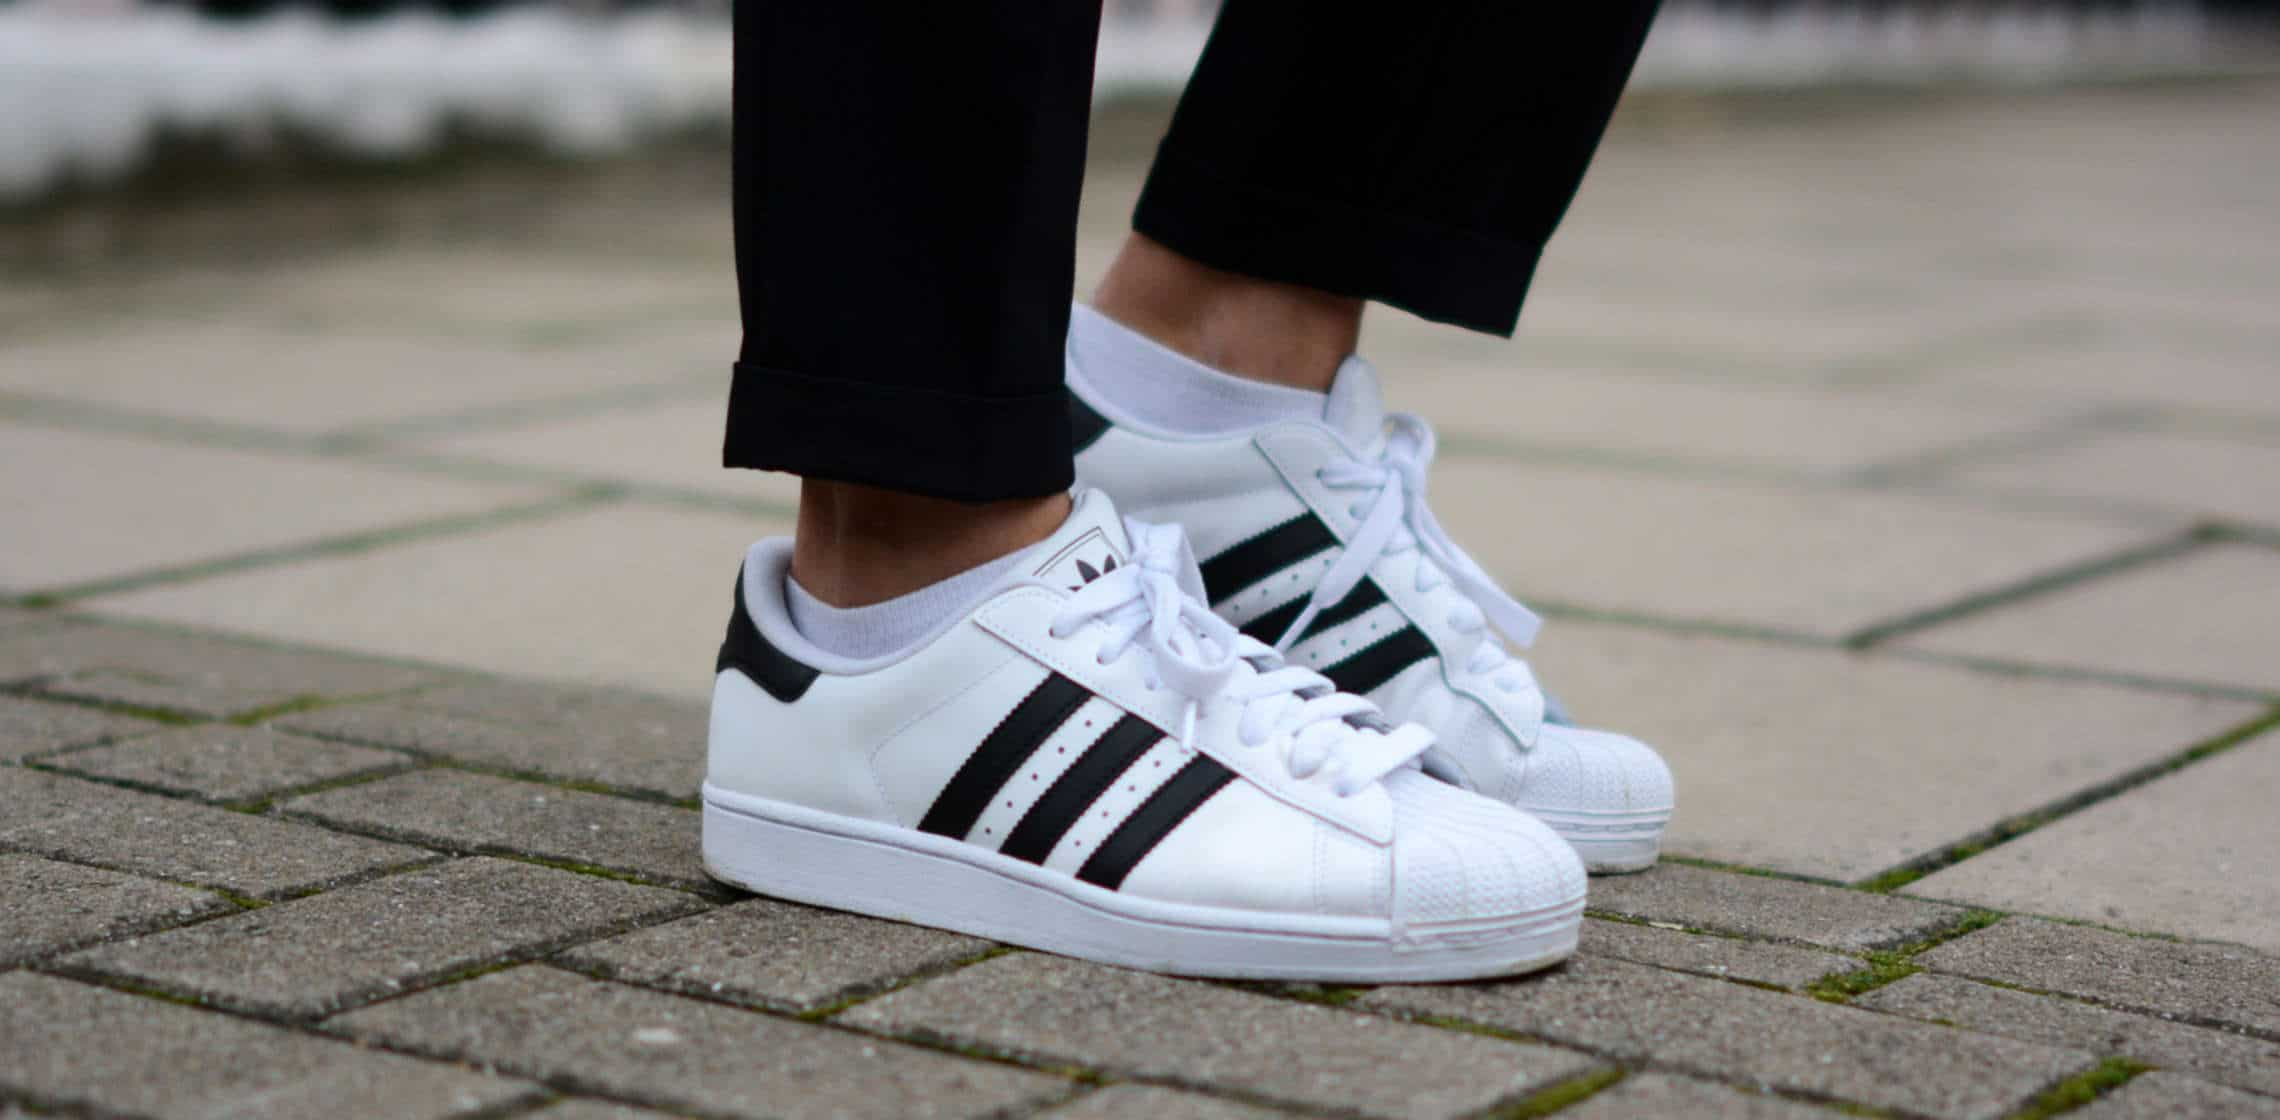 meet c487a 33e46 OJO  zapatillas Adidas Superstar baratas (y originales) en AliExpress - 2019